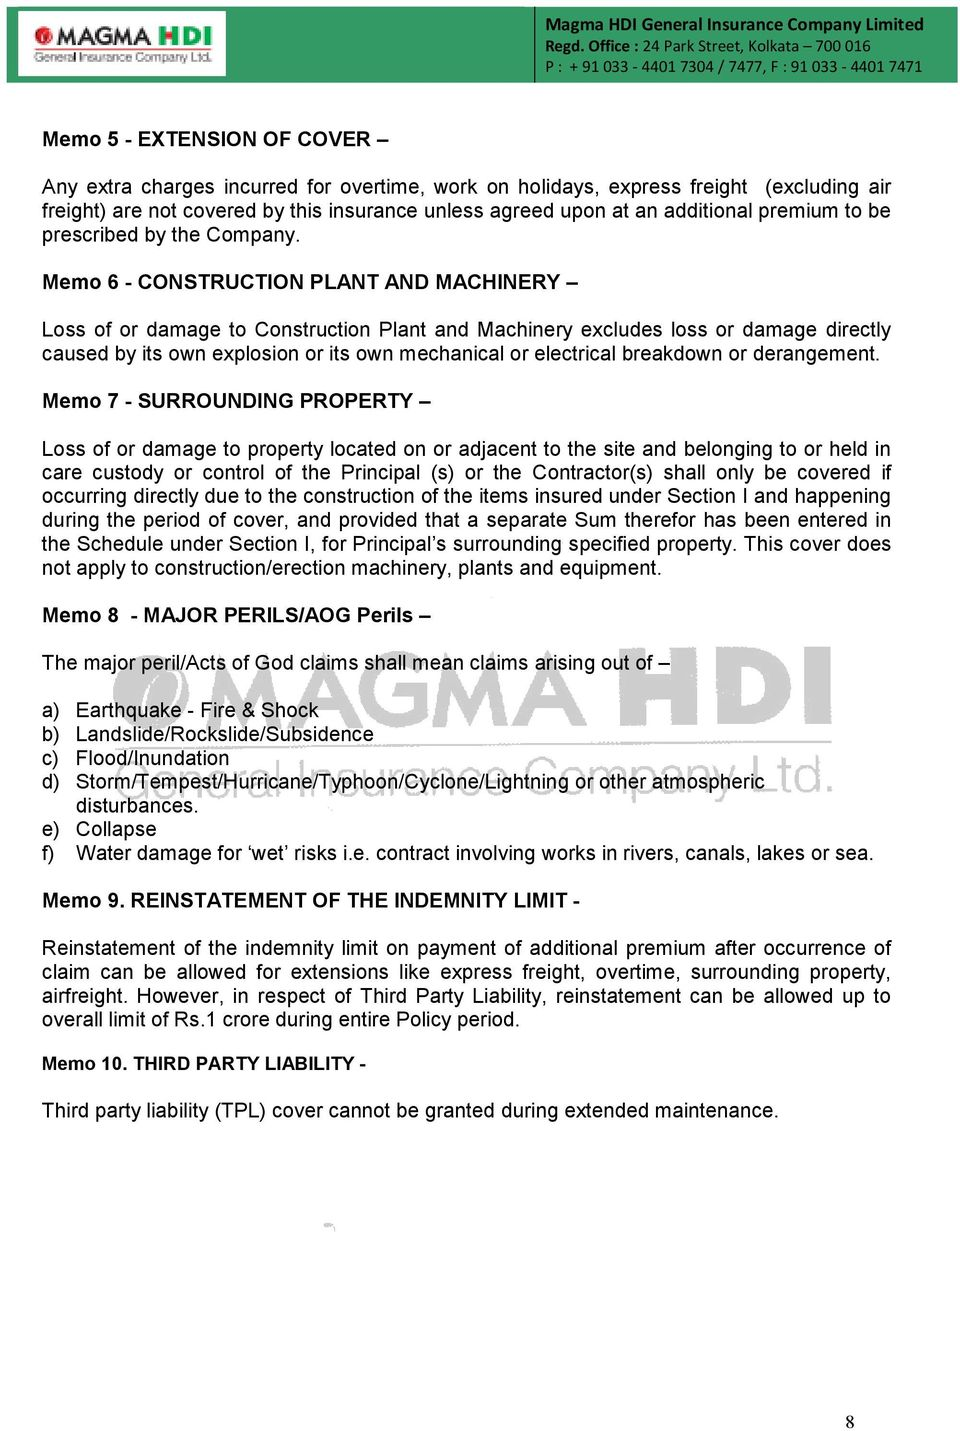 Memo 6 - CONSTRUCTION PLANT AND MACHINERY Loss of or damage to Construction Plant and Machinery excludes loss or damage directly caused by its own explosion or its own mechanical or electrical